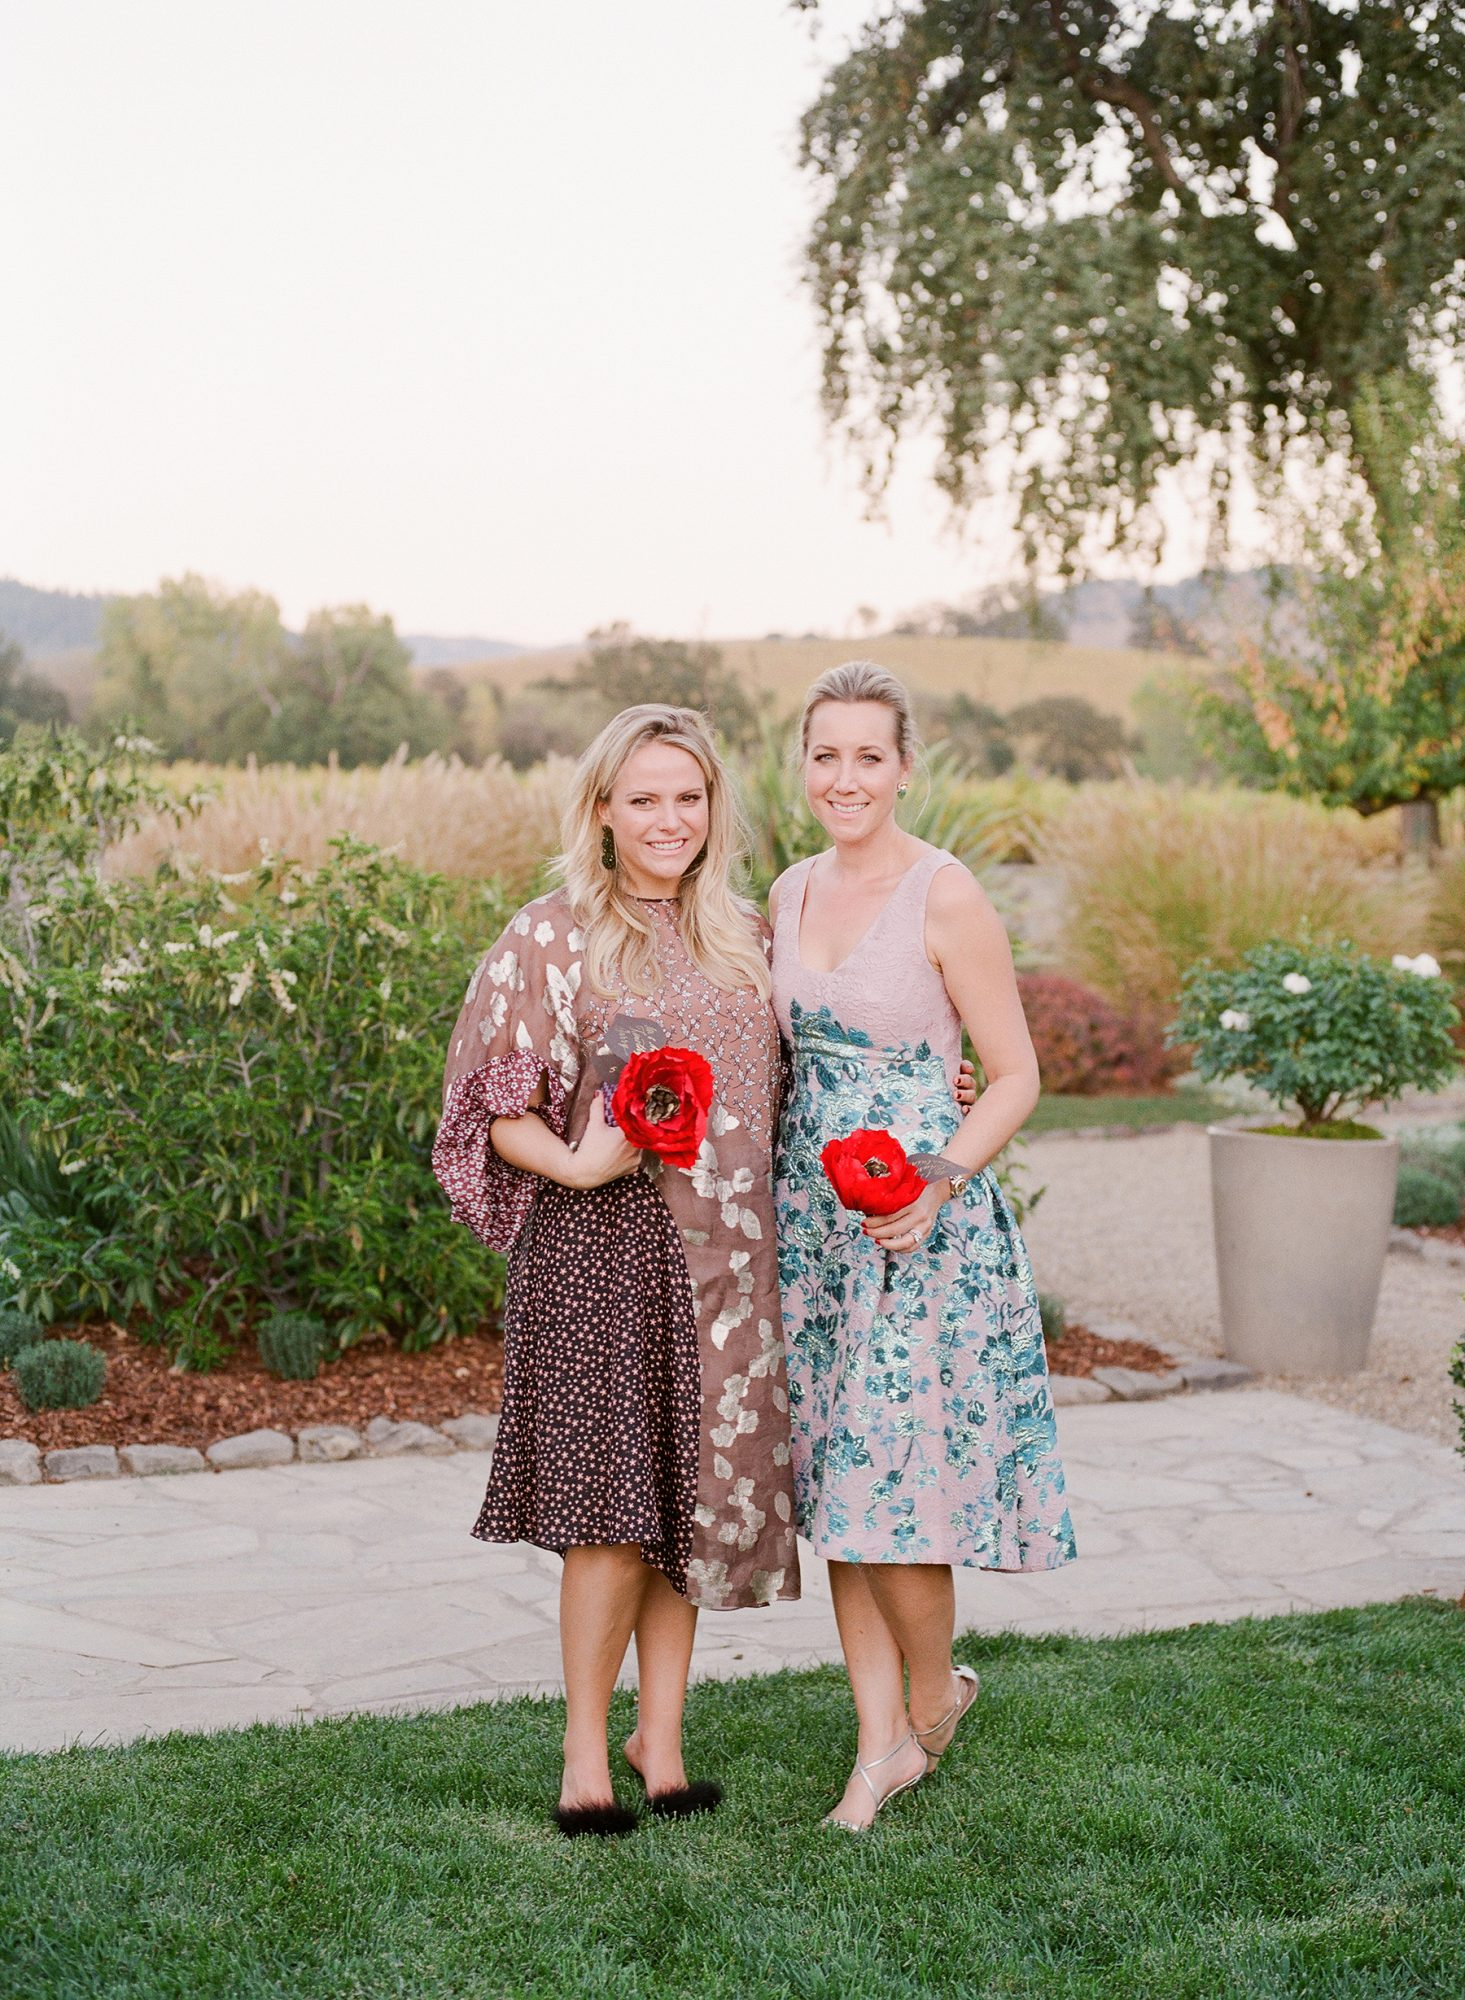 jenna alok wedding wine country california guests flowers